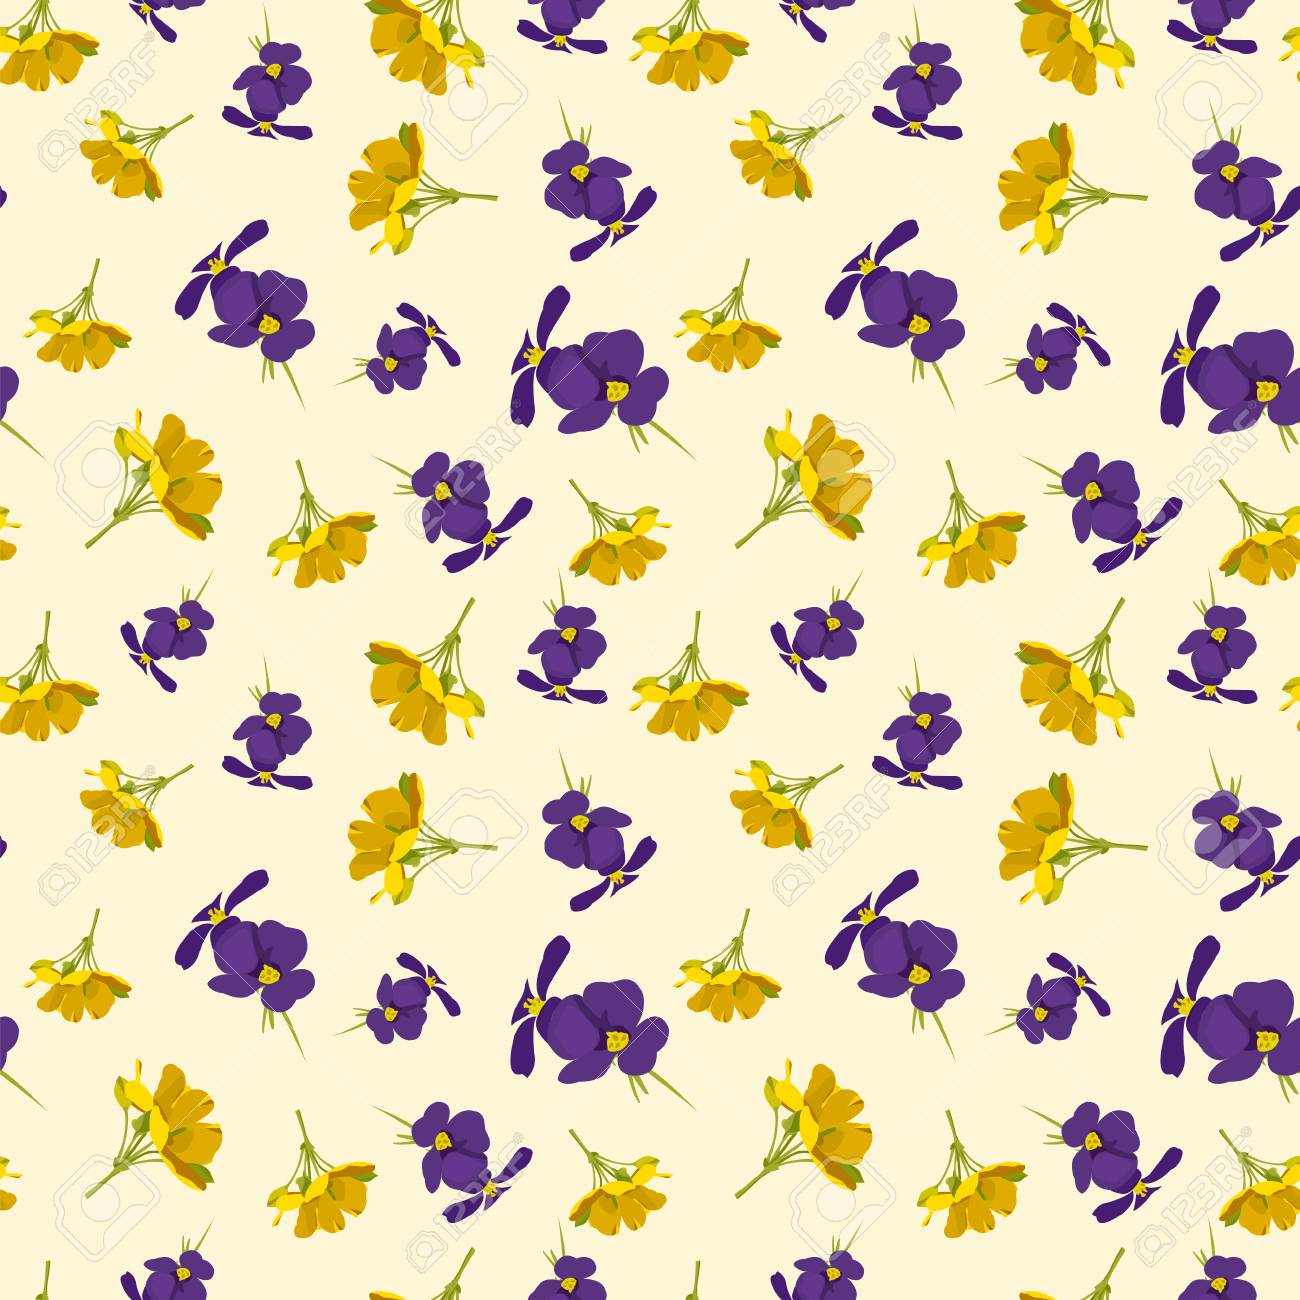 Seamless Cute Floral Pattern Purple And Yellow Flowers Wallpaper